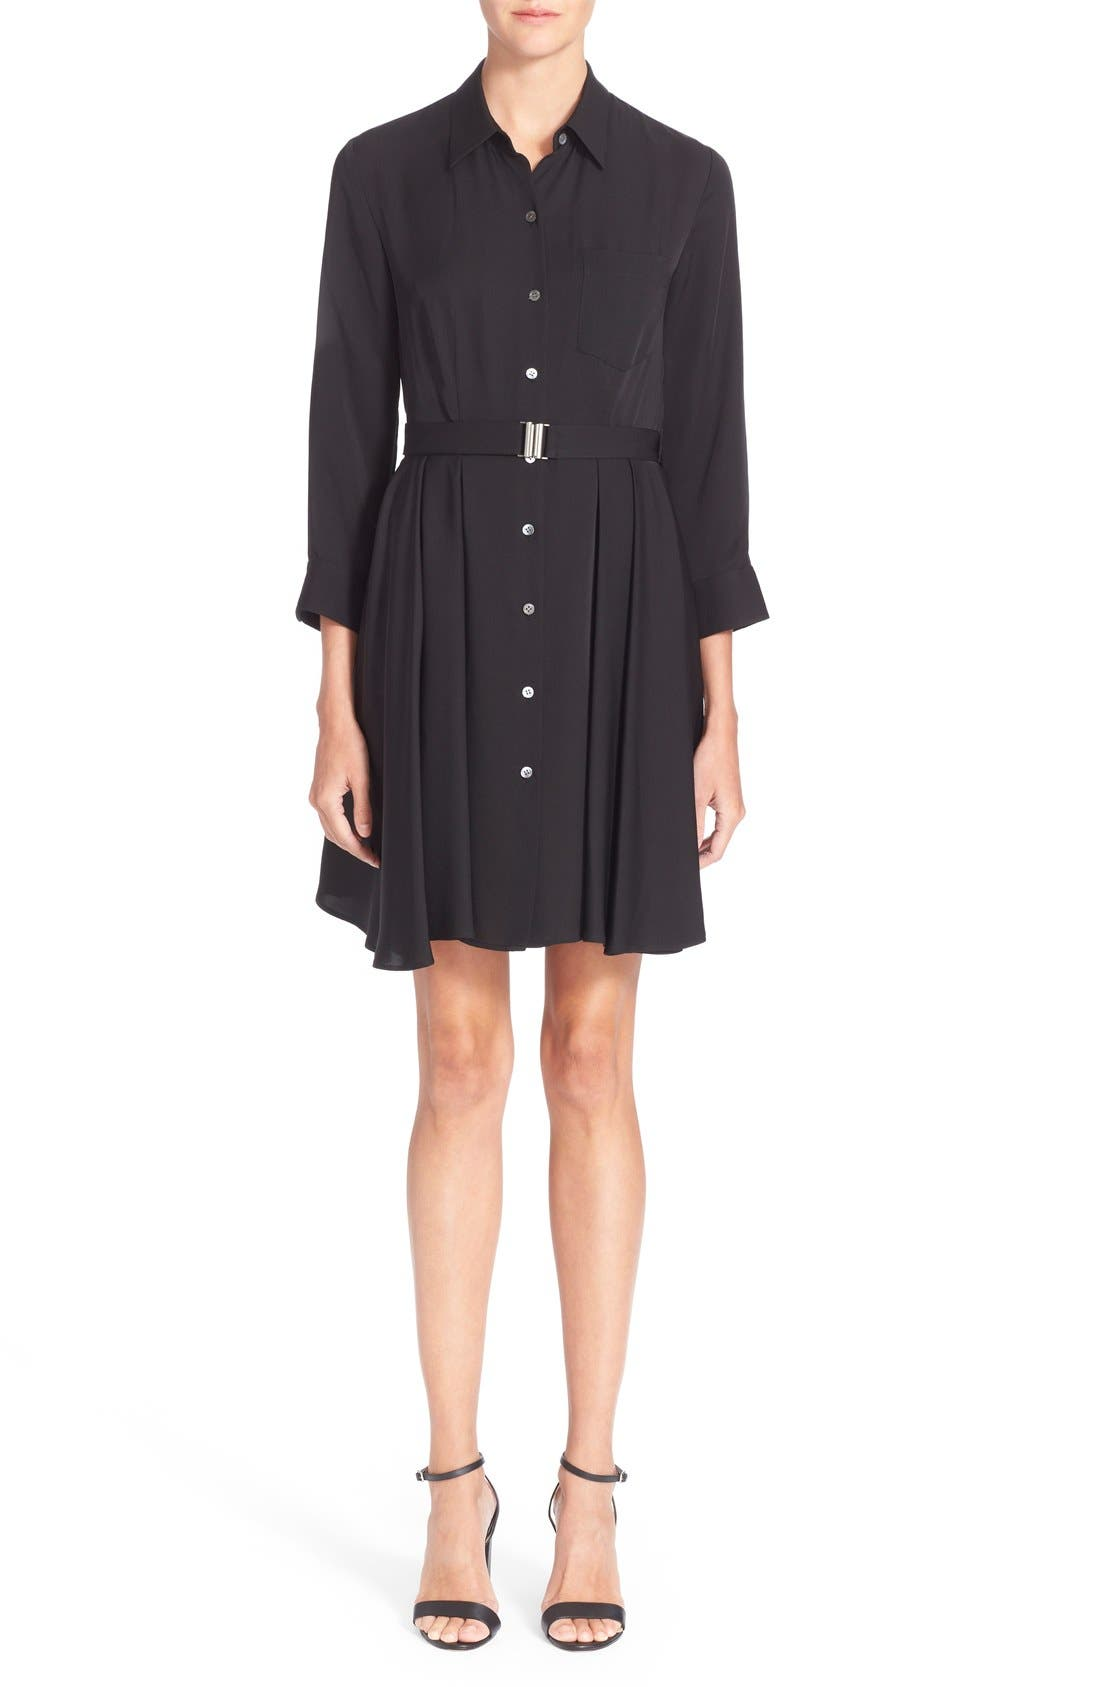 Alternate Image 1 Selected - Theory 'Jaylis' Silk Shirtdress (Nordstrom Exclusive)